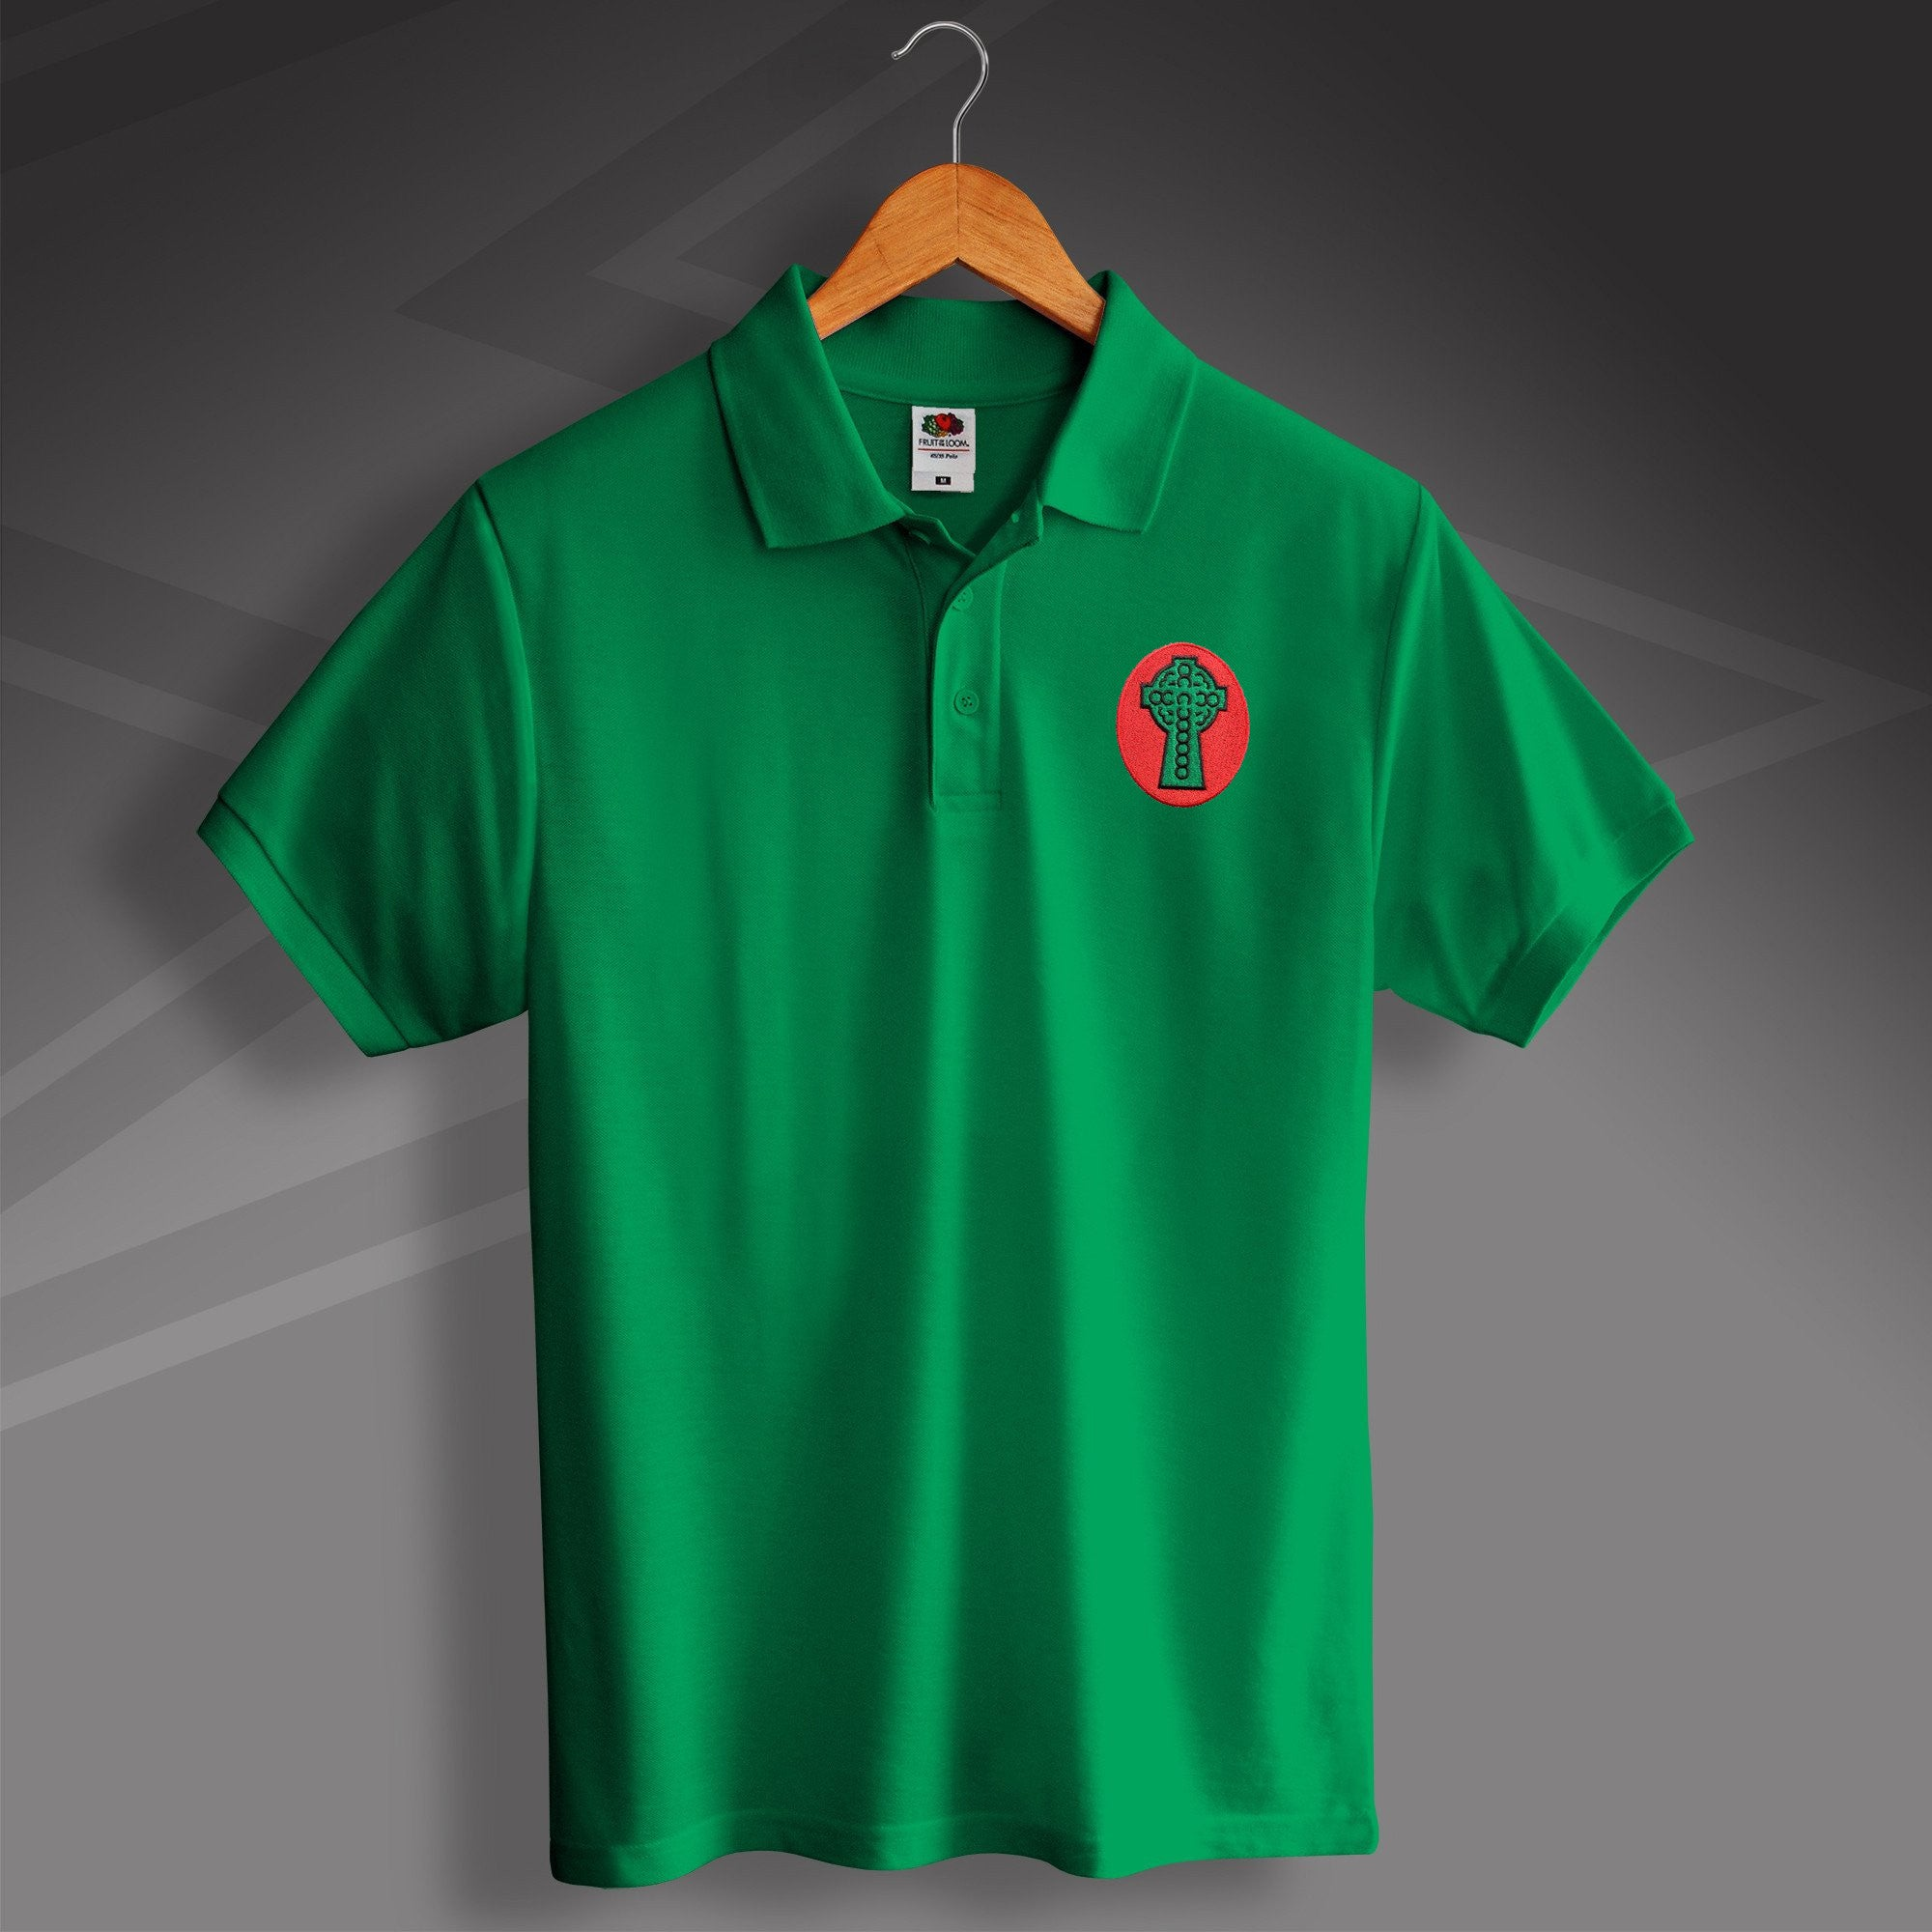 Embroidered Polo Shirts Glasgow | Oregon Guide Book